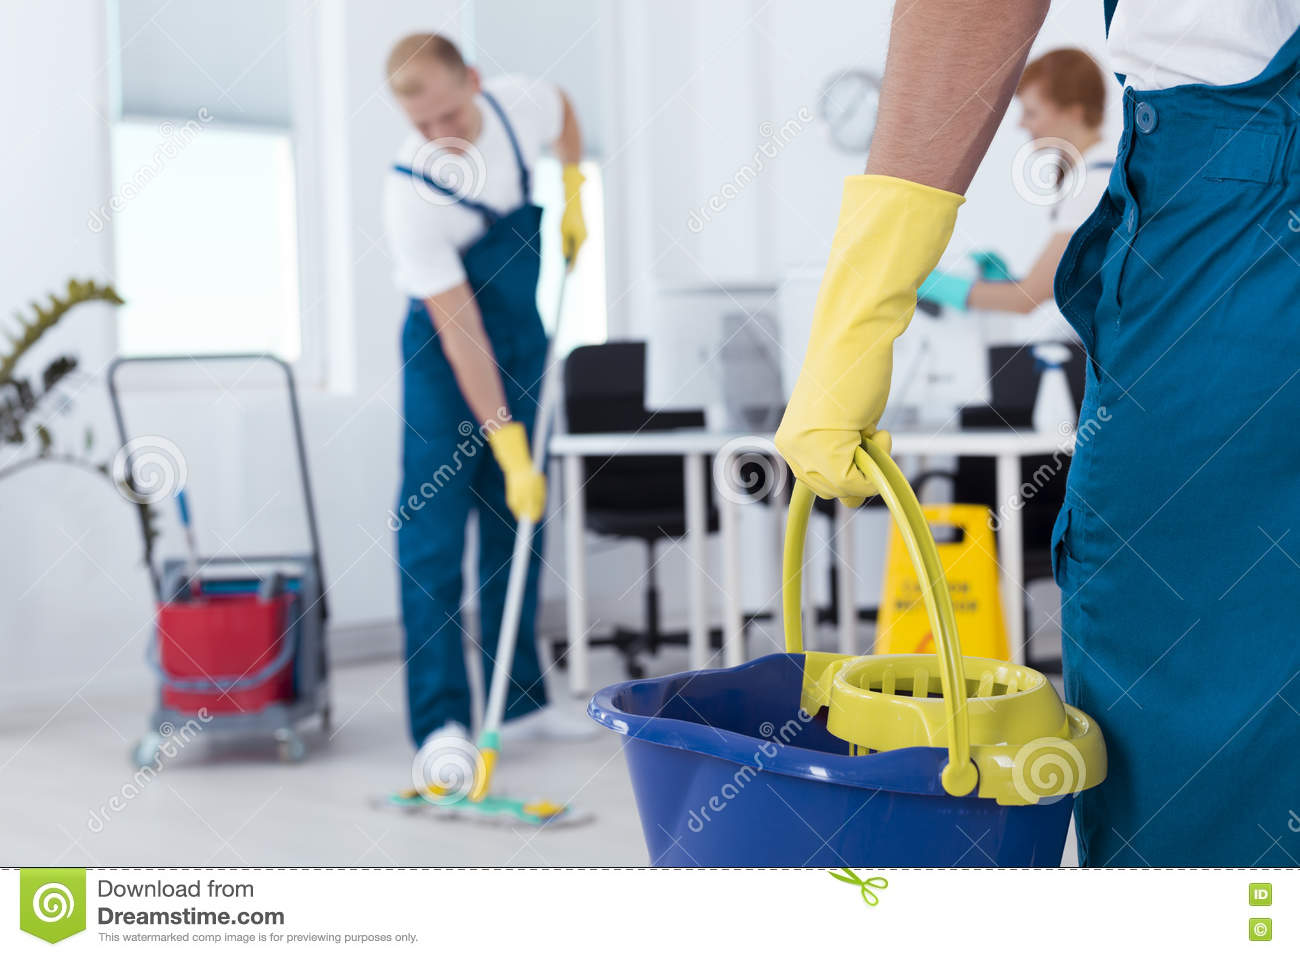 Person holding a mop pail